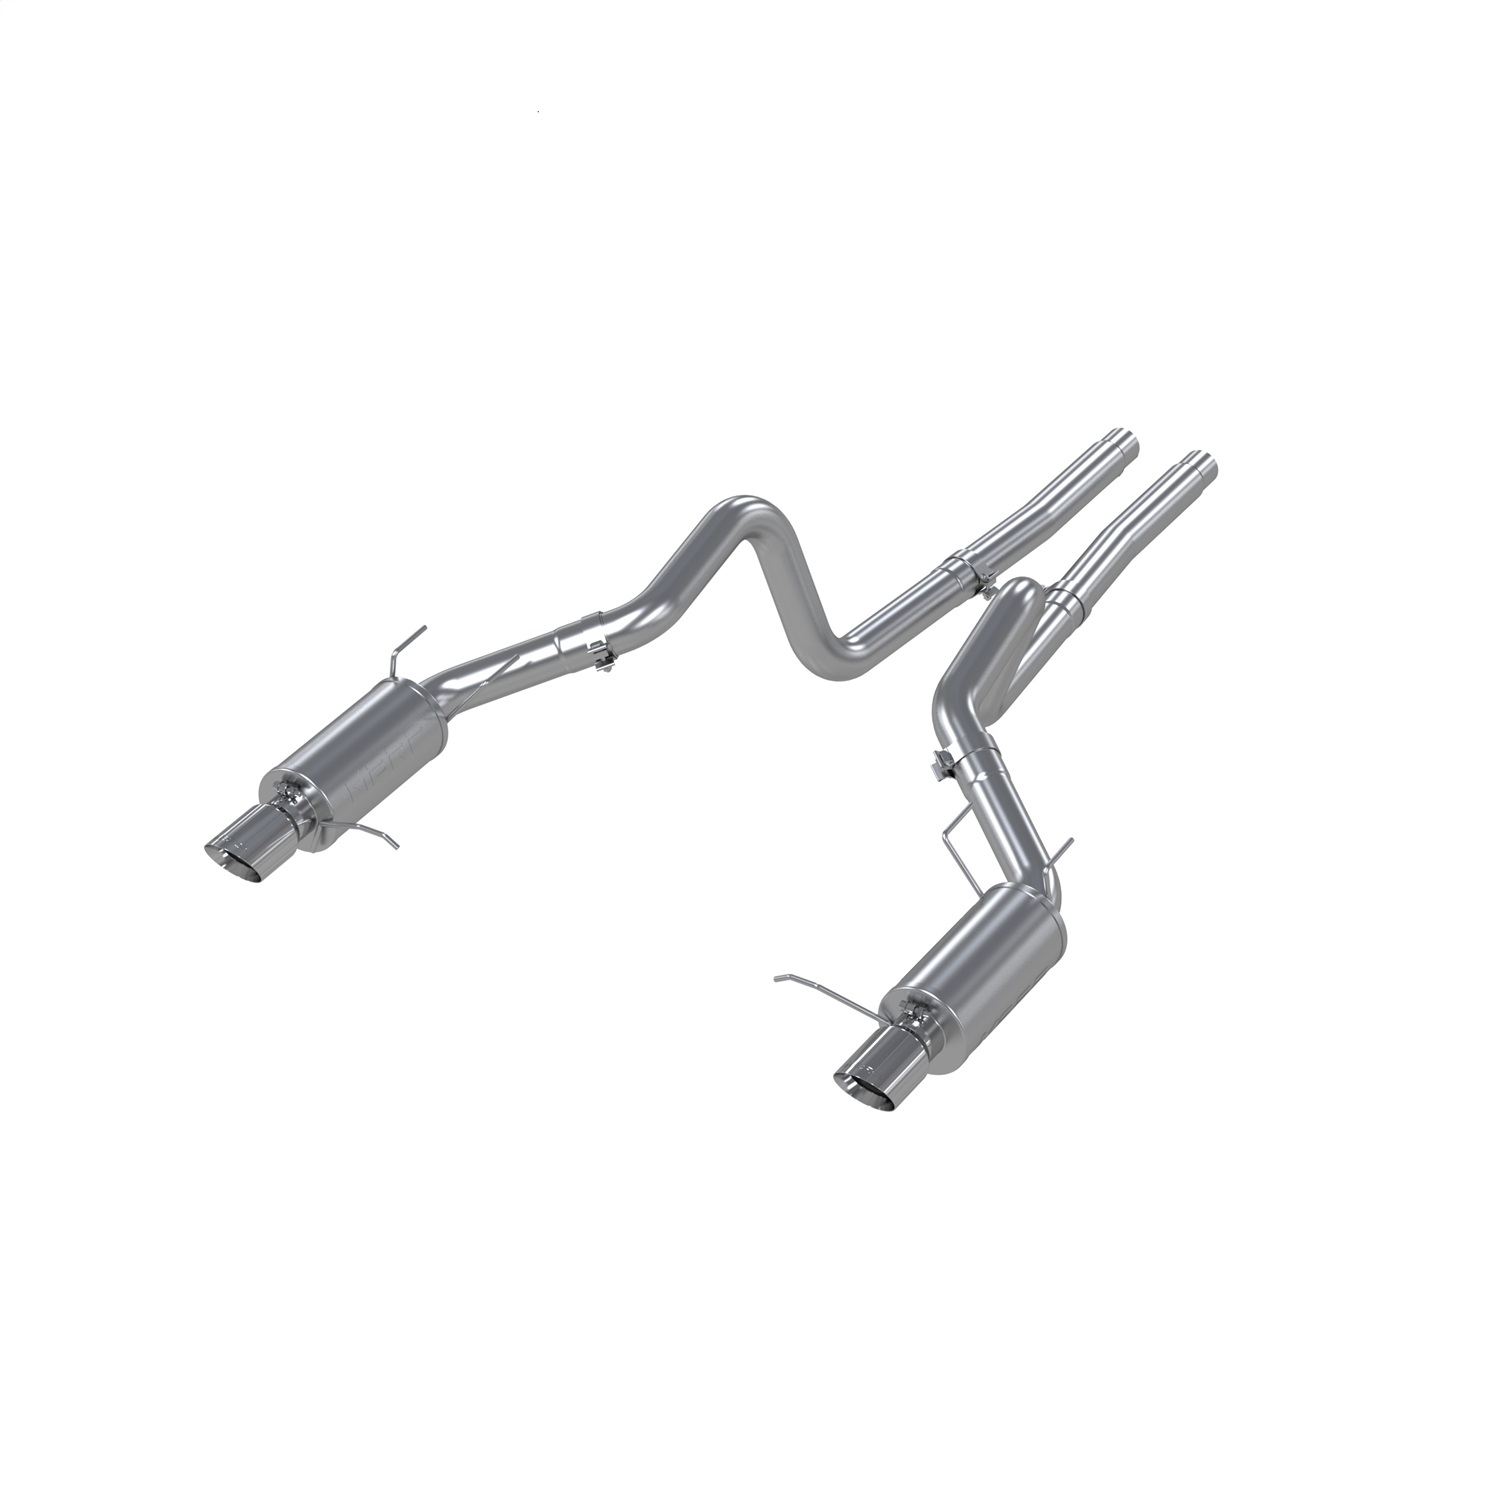 Mbrp 3 Exhaust Ford Mustang Gt 5 0 Cat Back